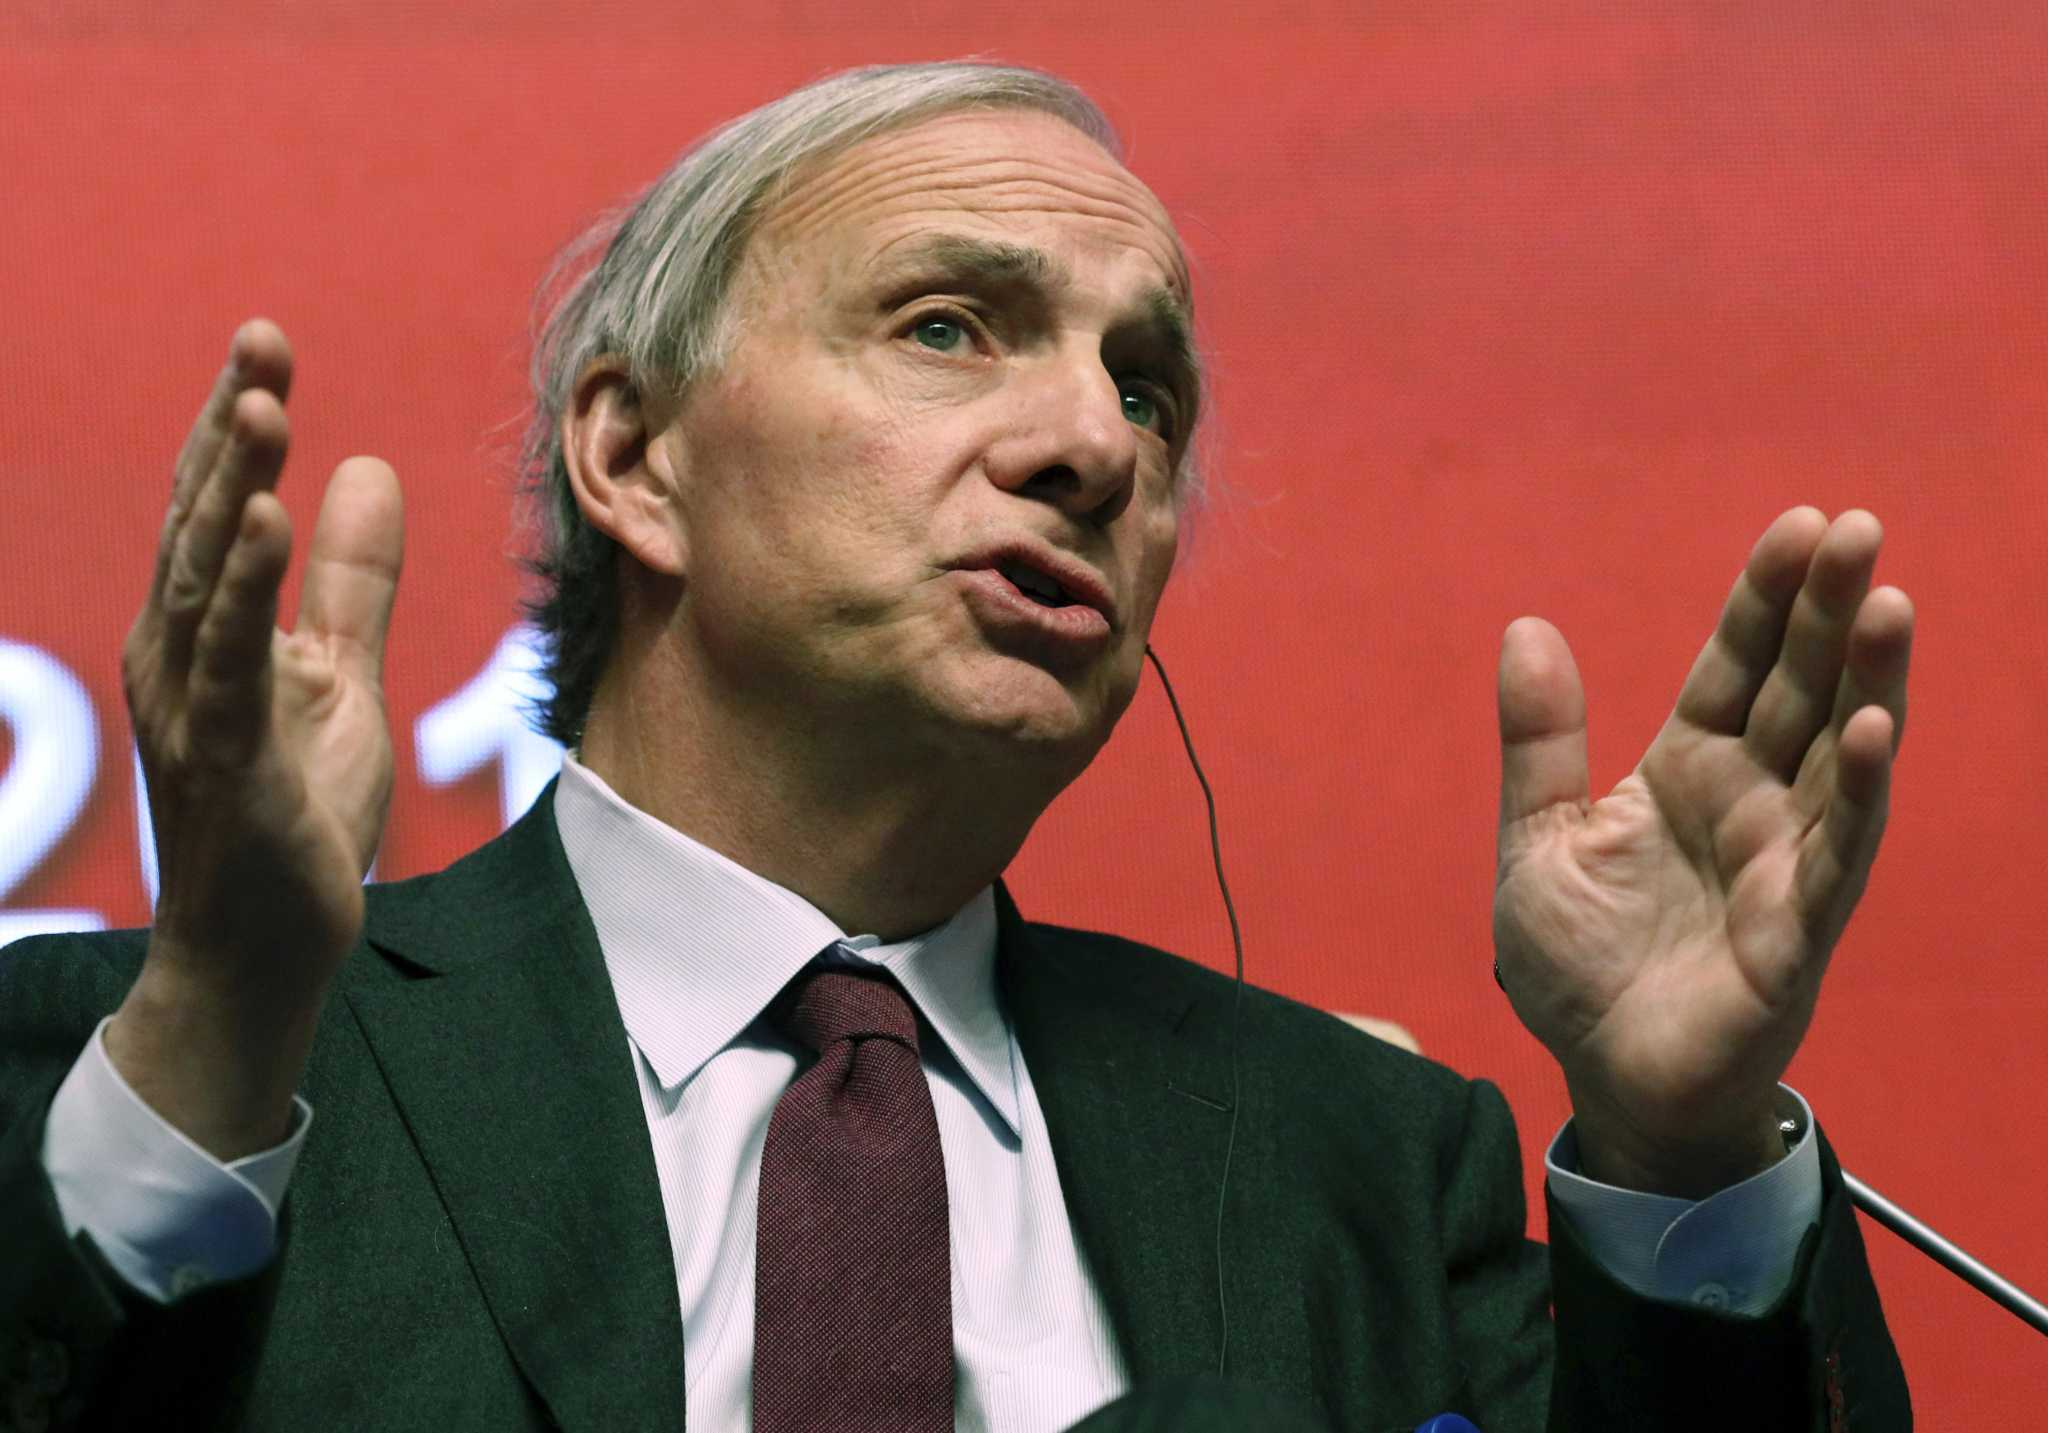 Dalio funds for CT schools come with 'problematic' conditions